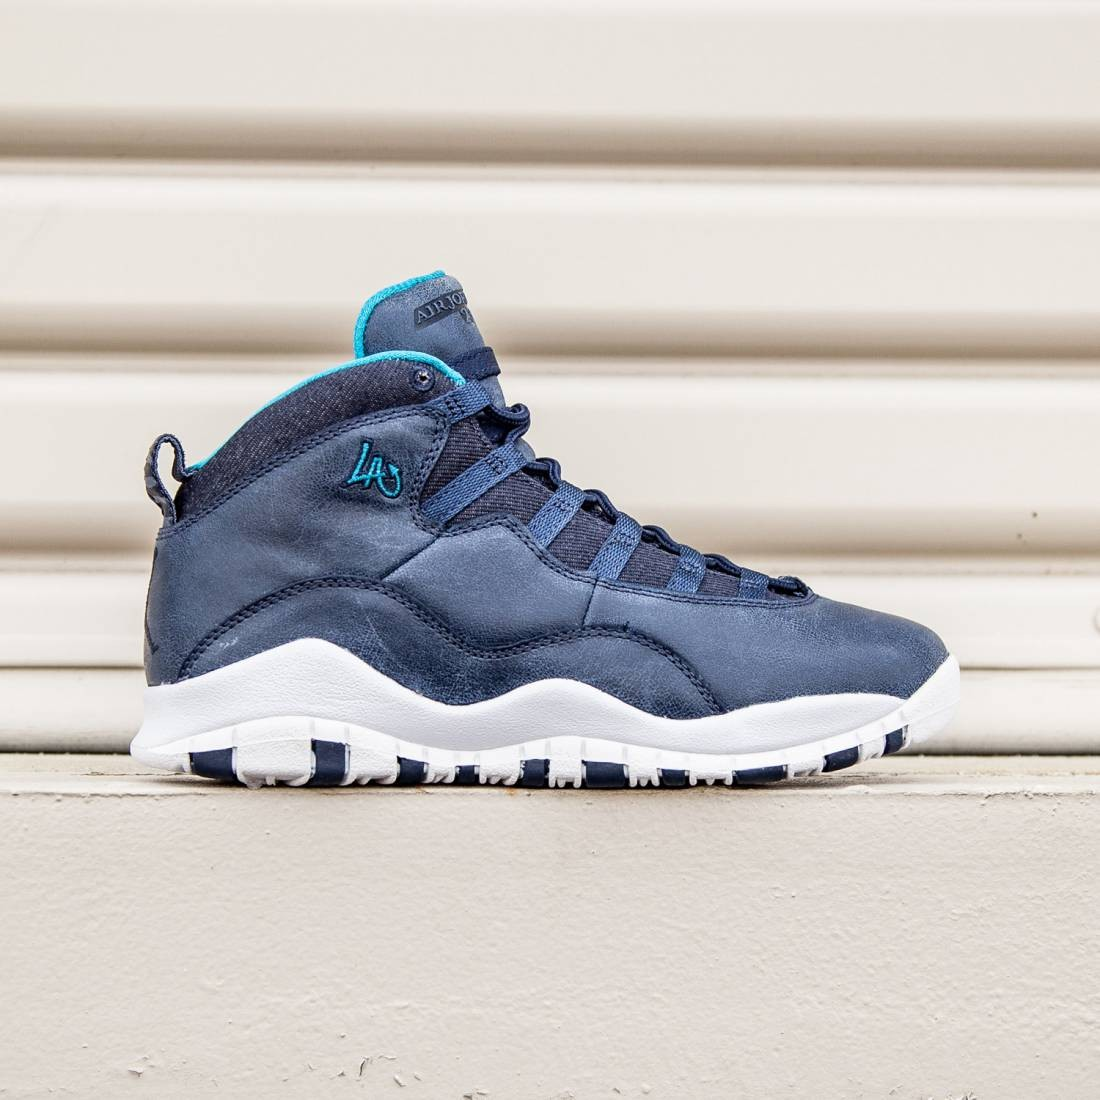 the latest e8e52 9c664 Jordan Big Kids Air Jordan Retro 10 City Pack LA (ocean fog / blue lagoon /  white / midnight navy)